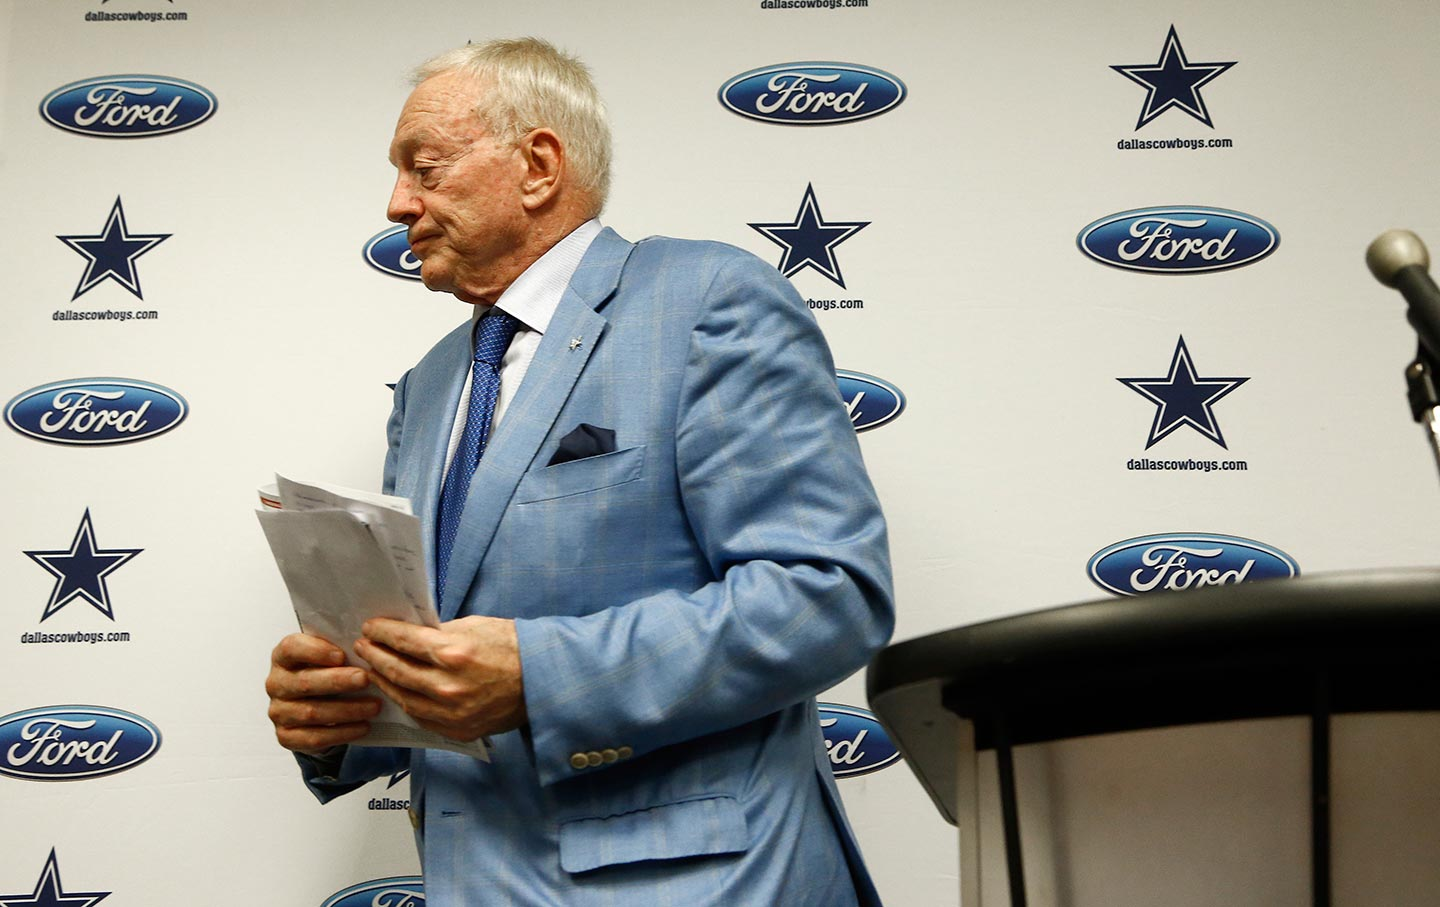 09e5f4708d849f Dallas Cowboys owner Jerry Jones leaves after speaking after an NFL  football game in Glendale, Arizona, on September 25, 2017. (AP Photo / Ross  D. Franklin)